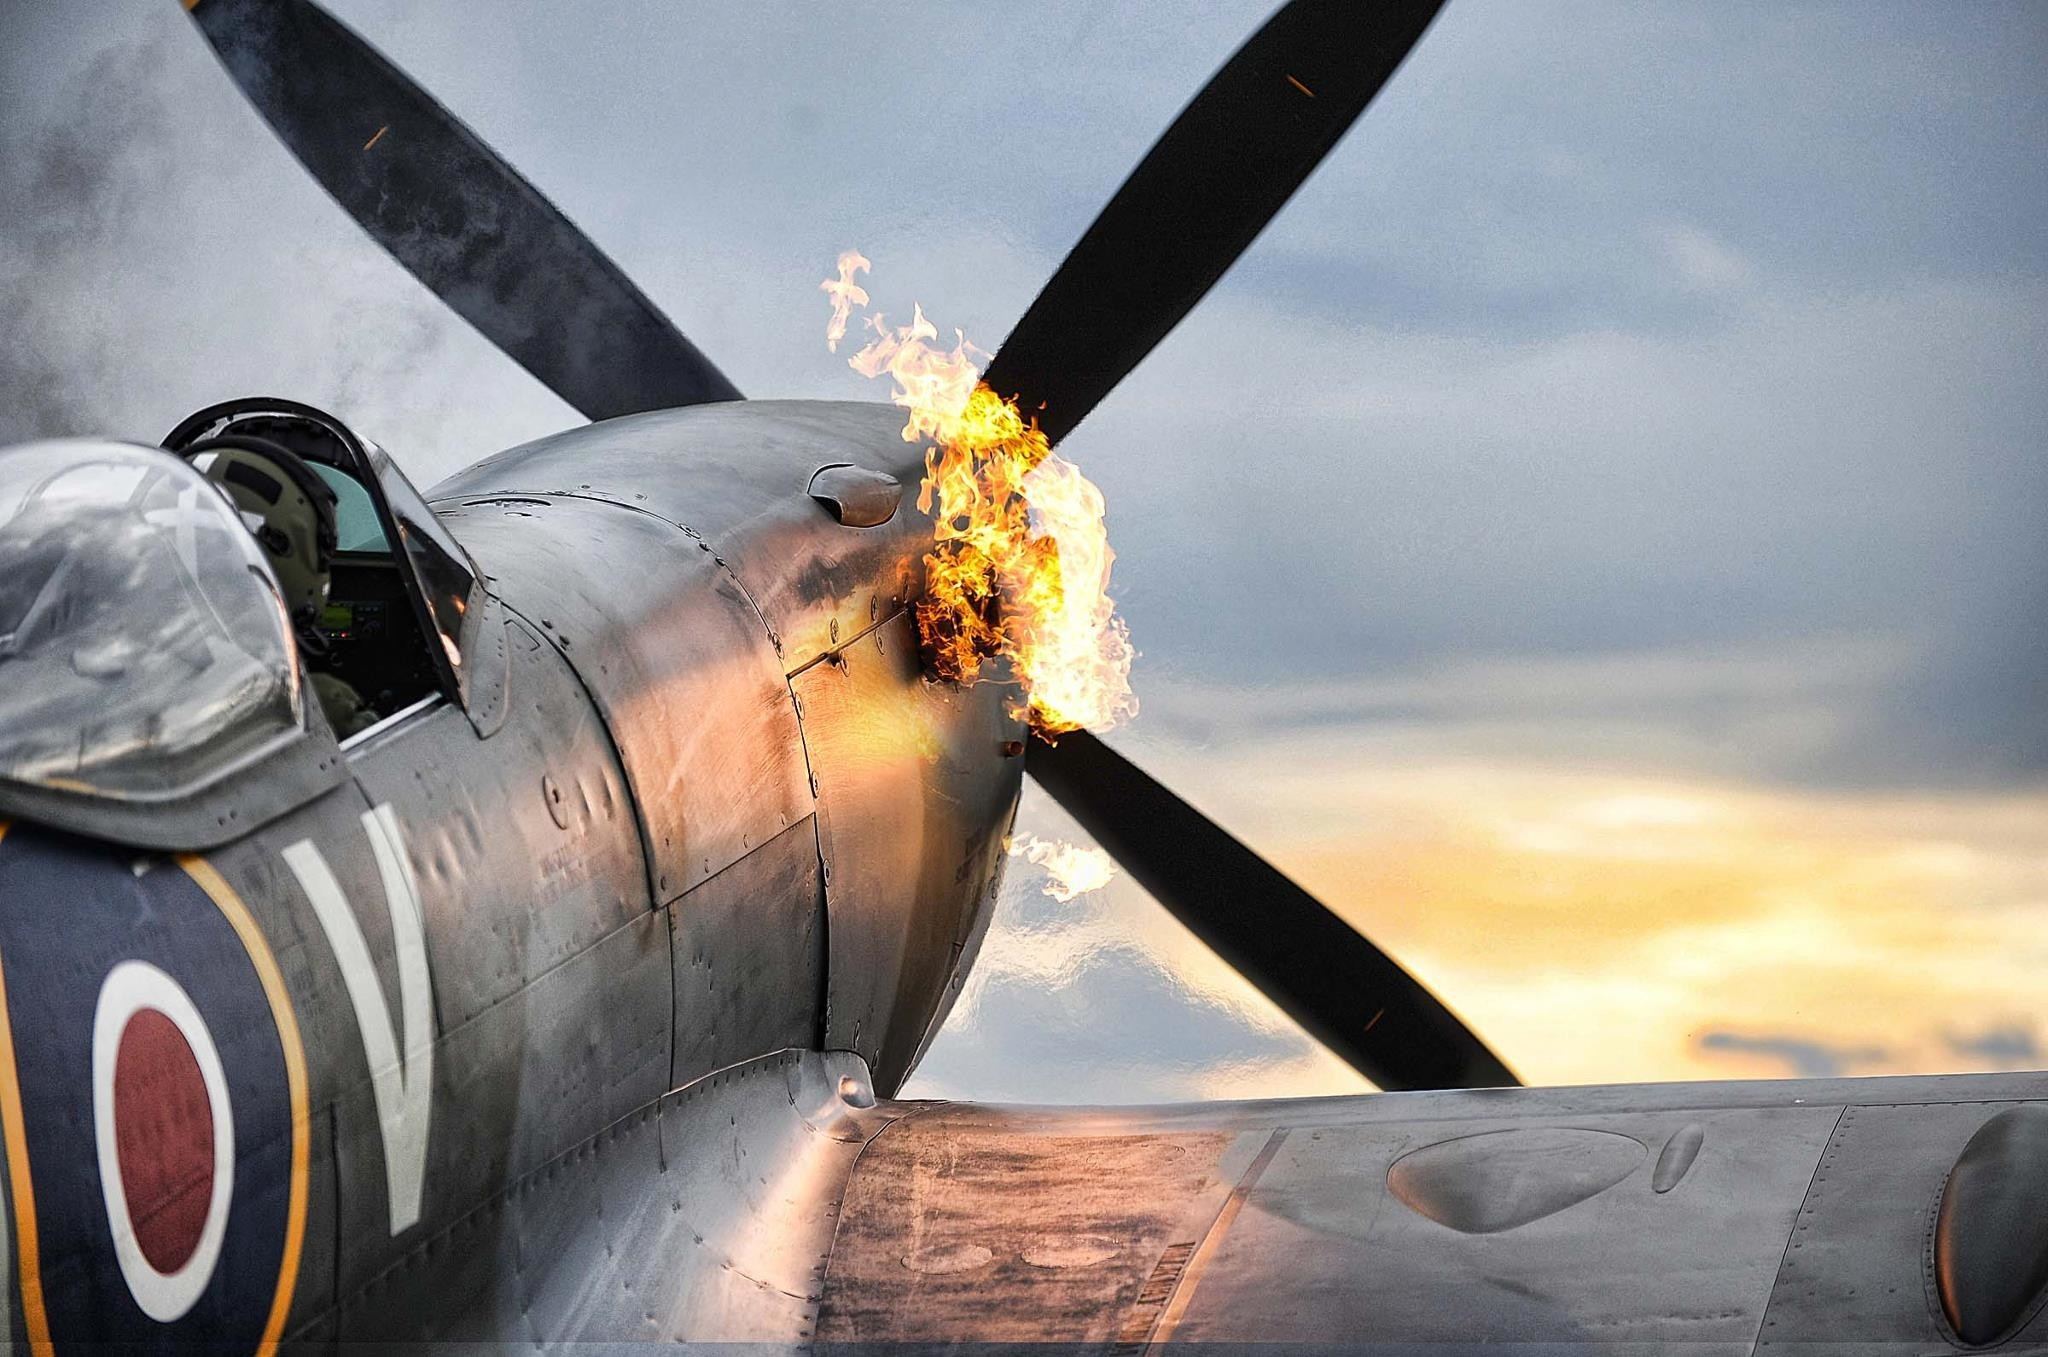 2048x1357  HD Wallpaper | Background ID:414054.  Military  Supermarine Spitfire